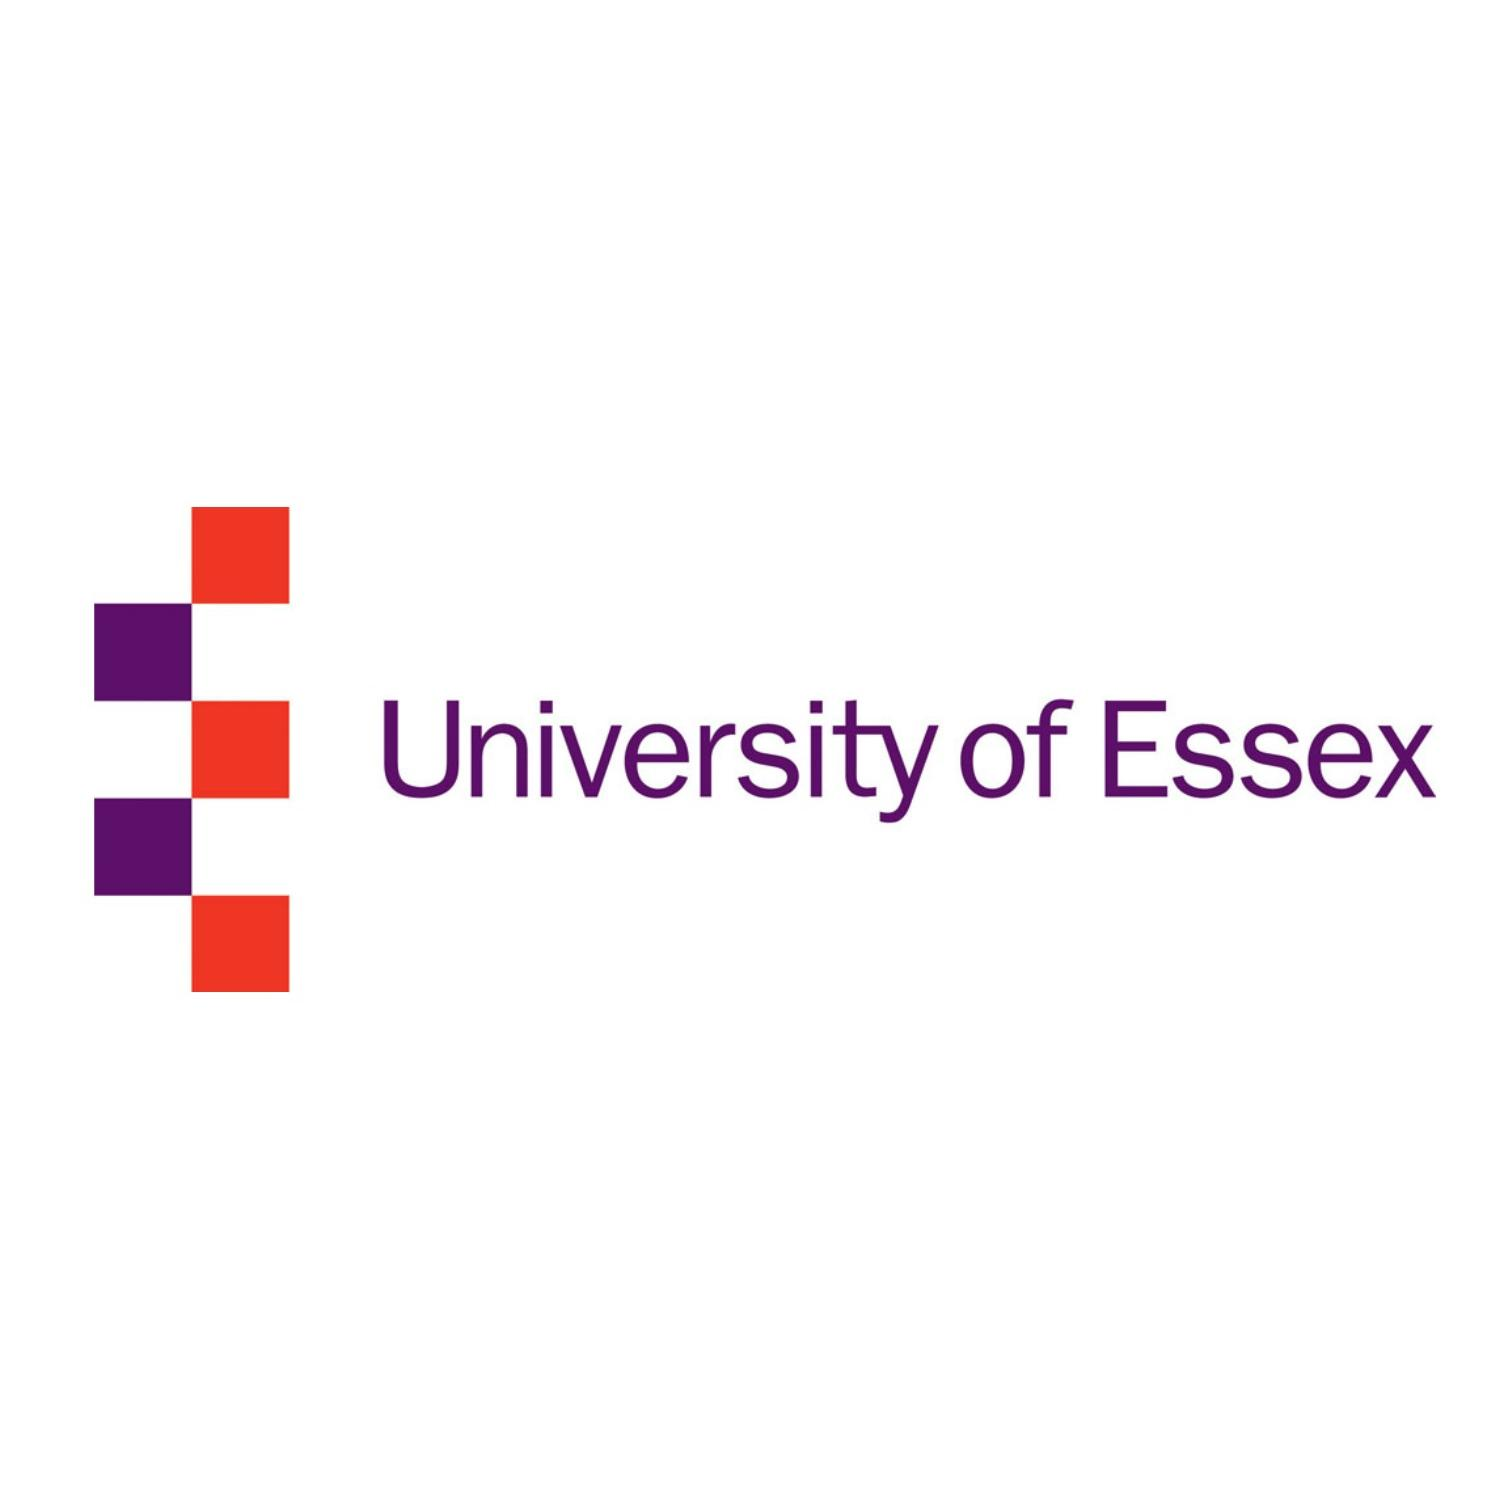 University of Essex Internship programs